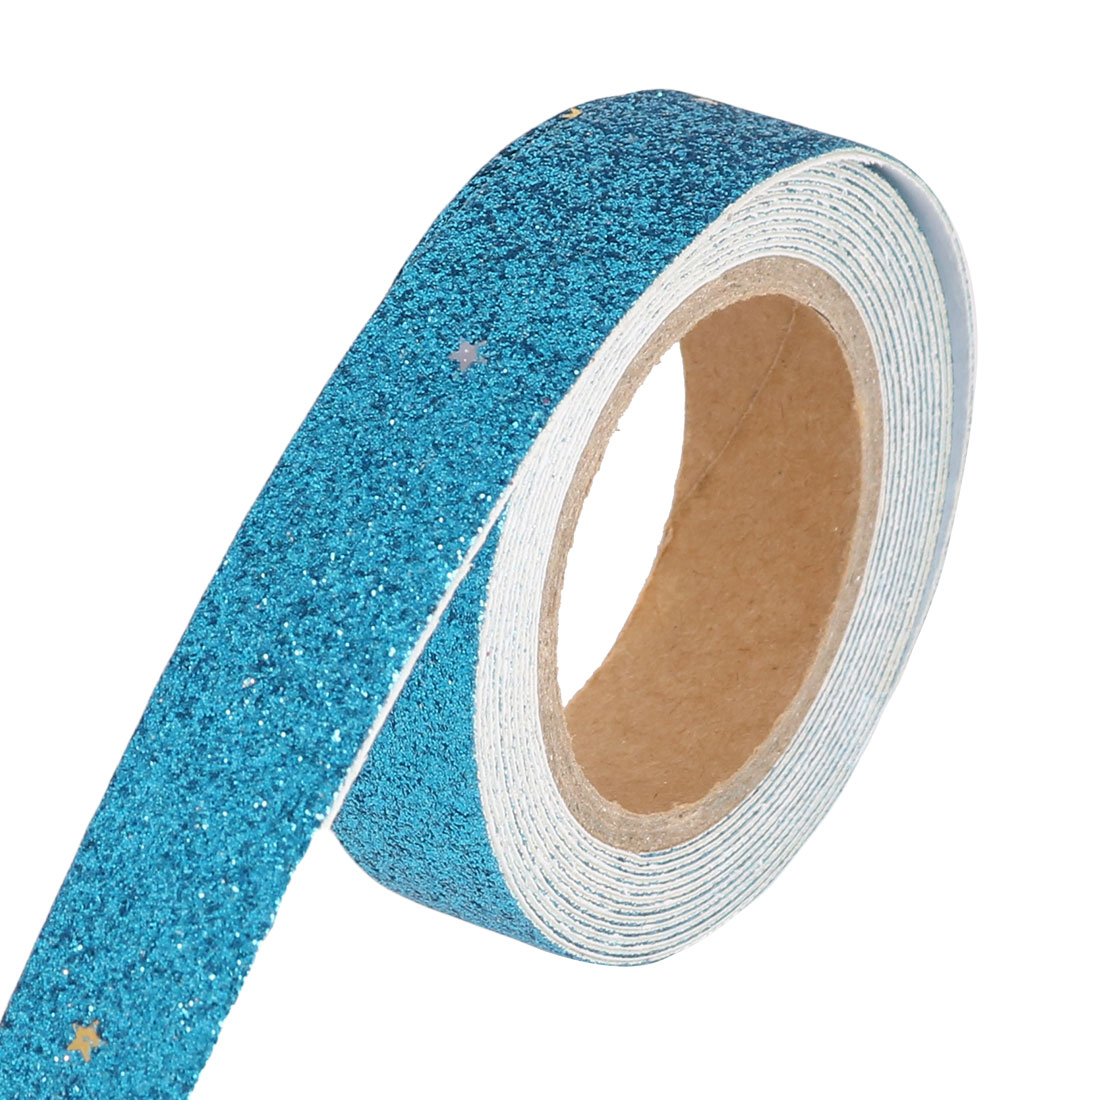 Glitter Self Adhesive Decorative DIY Crafting Sticky Paper Tape Sticker Blue